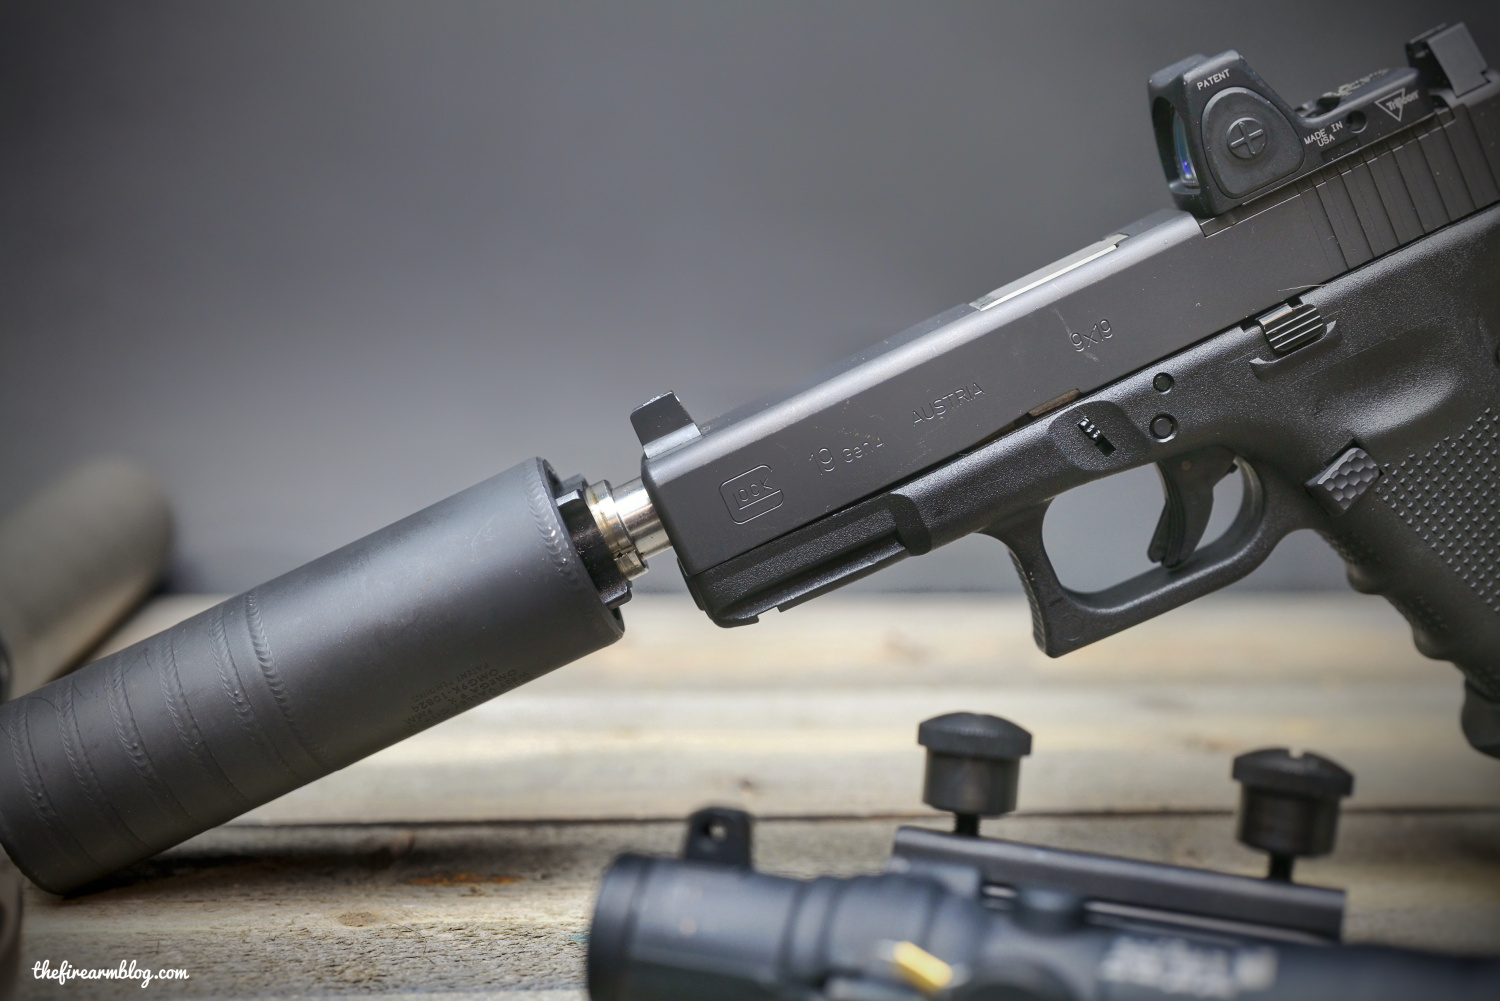 SILENCER SATURDAY #71: Suppressor Height Sights Are